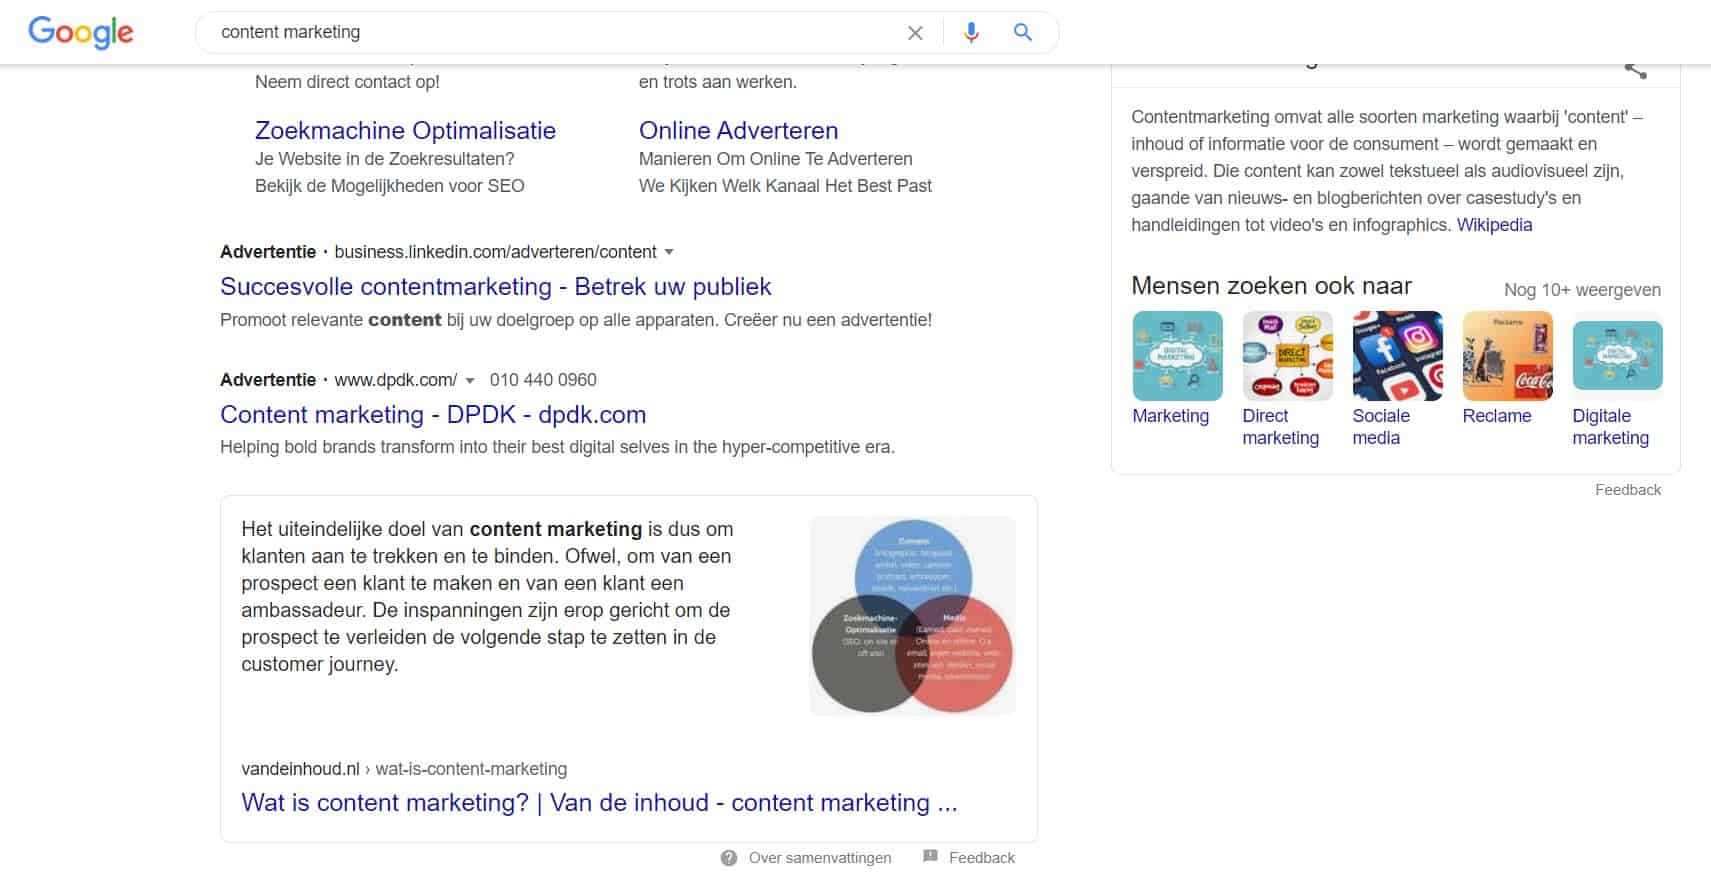 Featured snippet en kenniskaart in Google zoekresultaten bij zoekopdracht 'content marketing'.